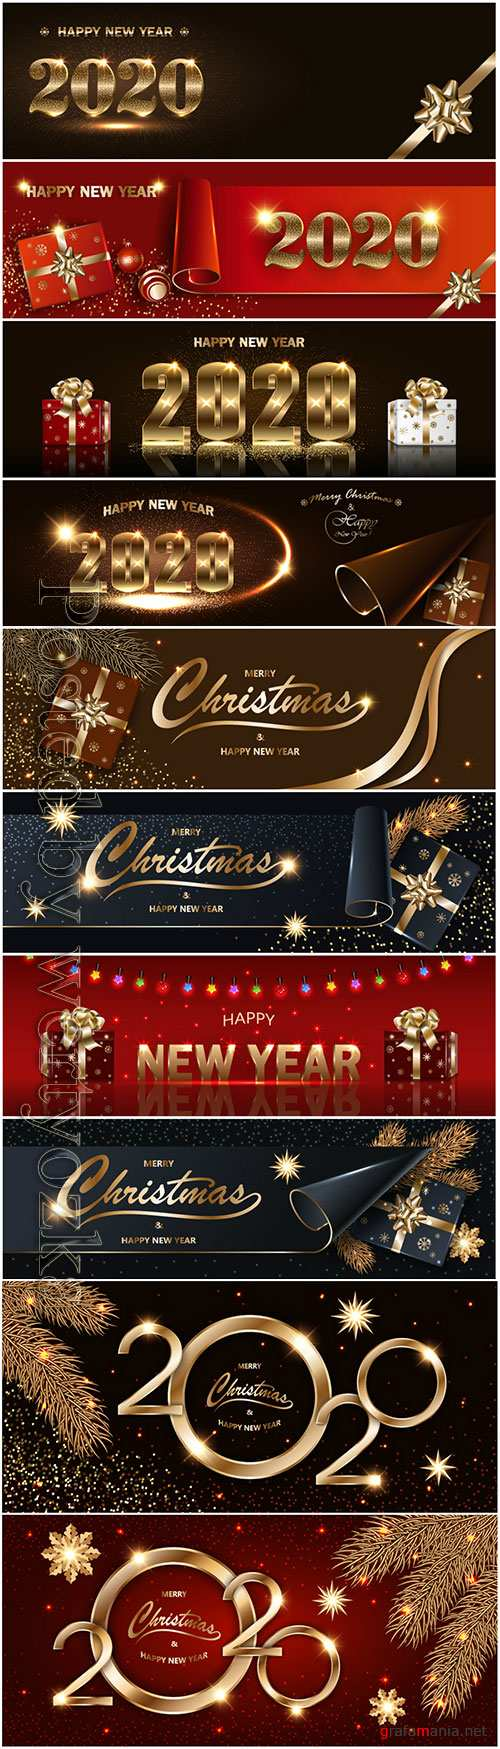 Merry Chistmas and Happy New Year 2020